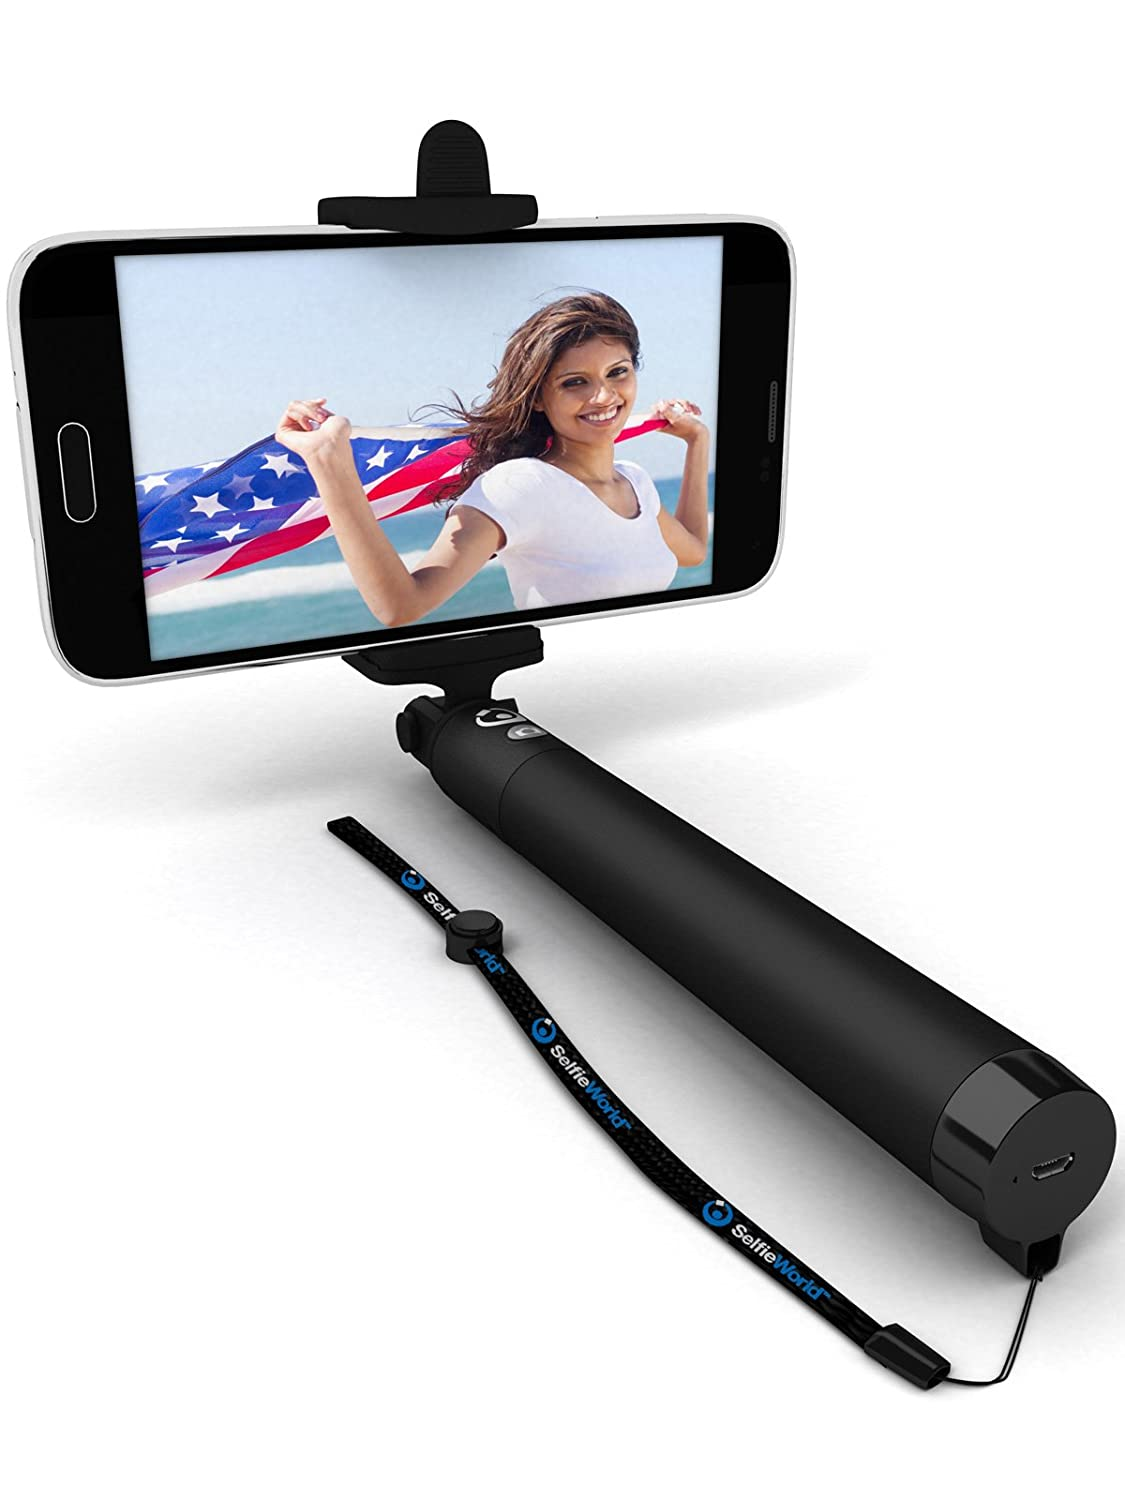 promo code 33a2b 17ba7 Premium 5-in-1 Bluetooth Selfie Stick for iPhone X XR XS 10 8 7 6 5,  Samsung Galaxy S10 S9 S8 S7 S6 S5, Android - Selfie Sticks (Powered by USA  ...